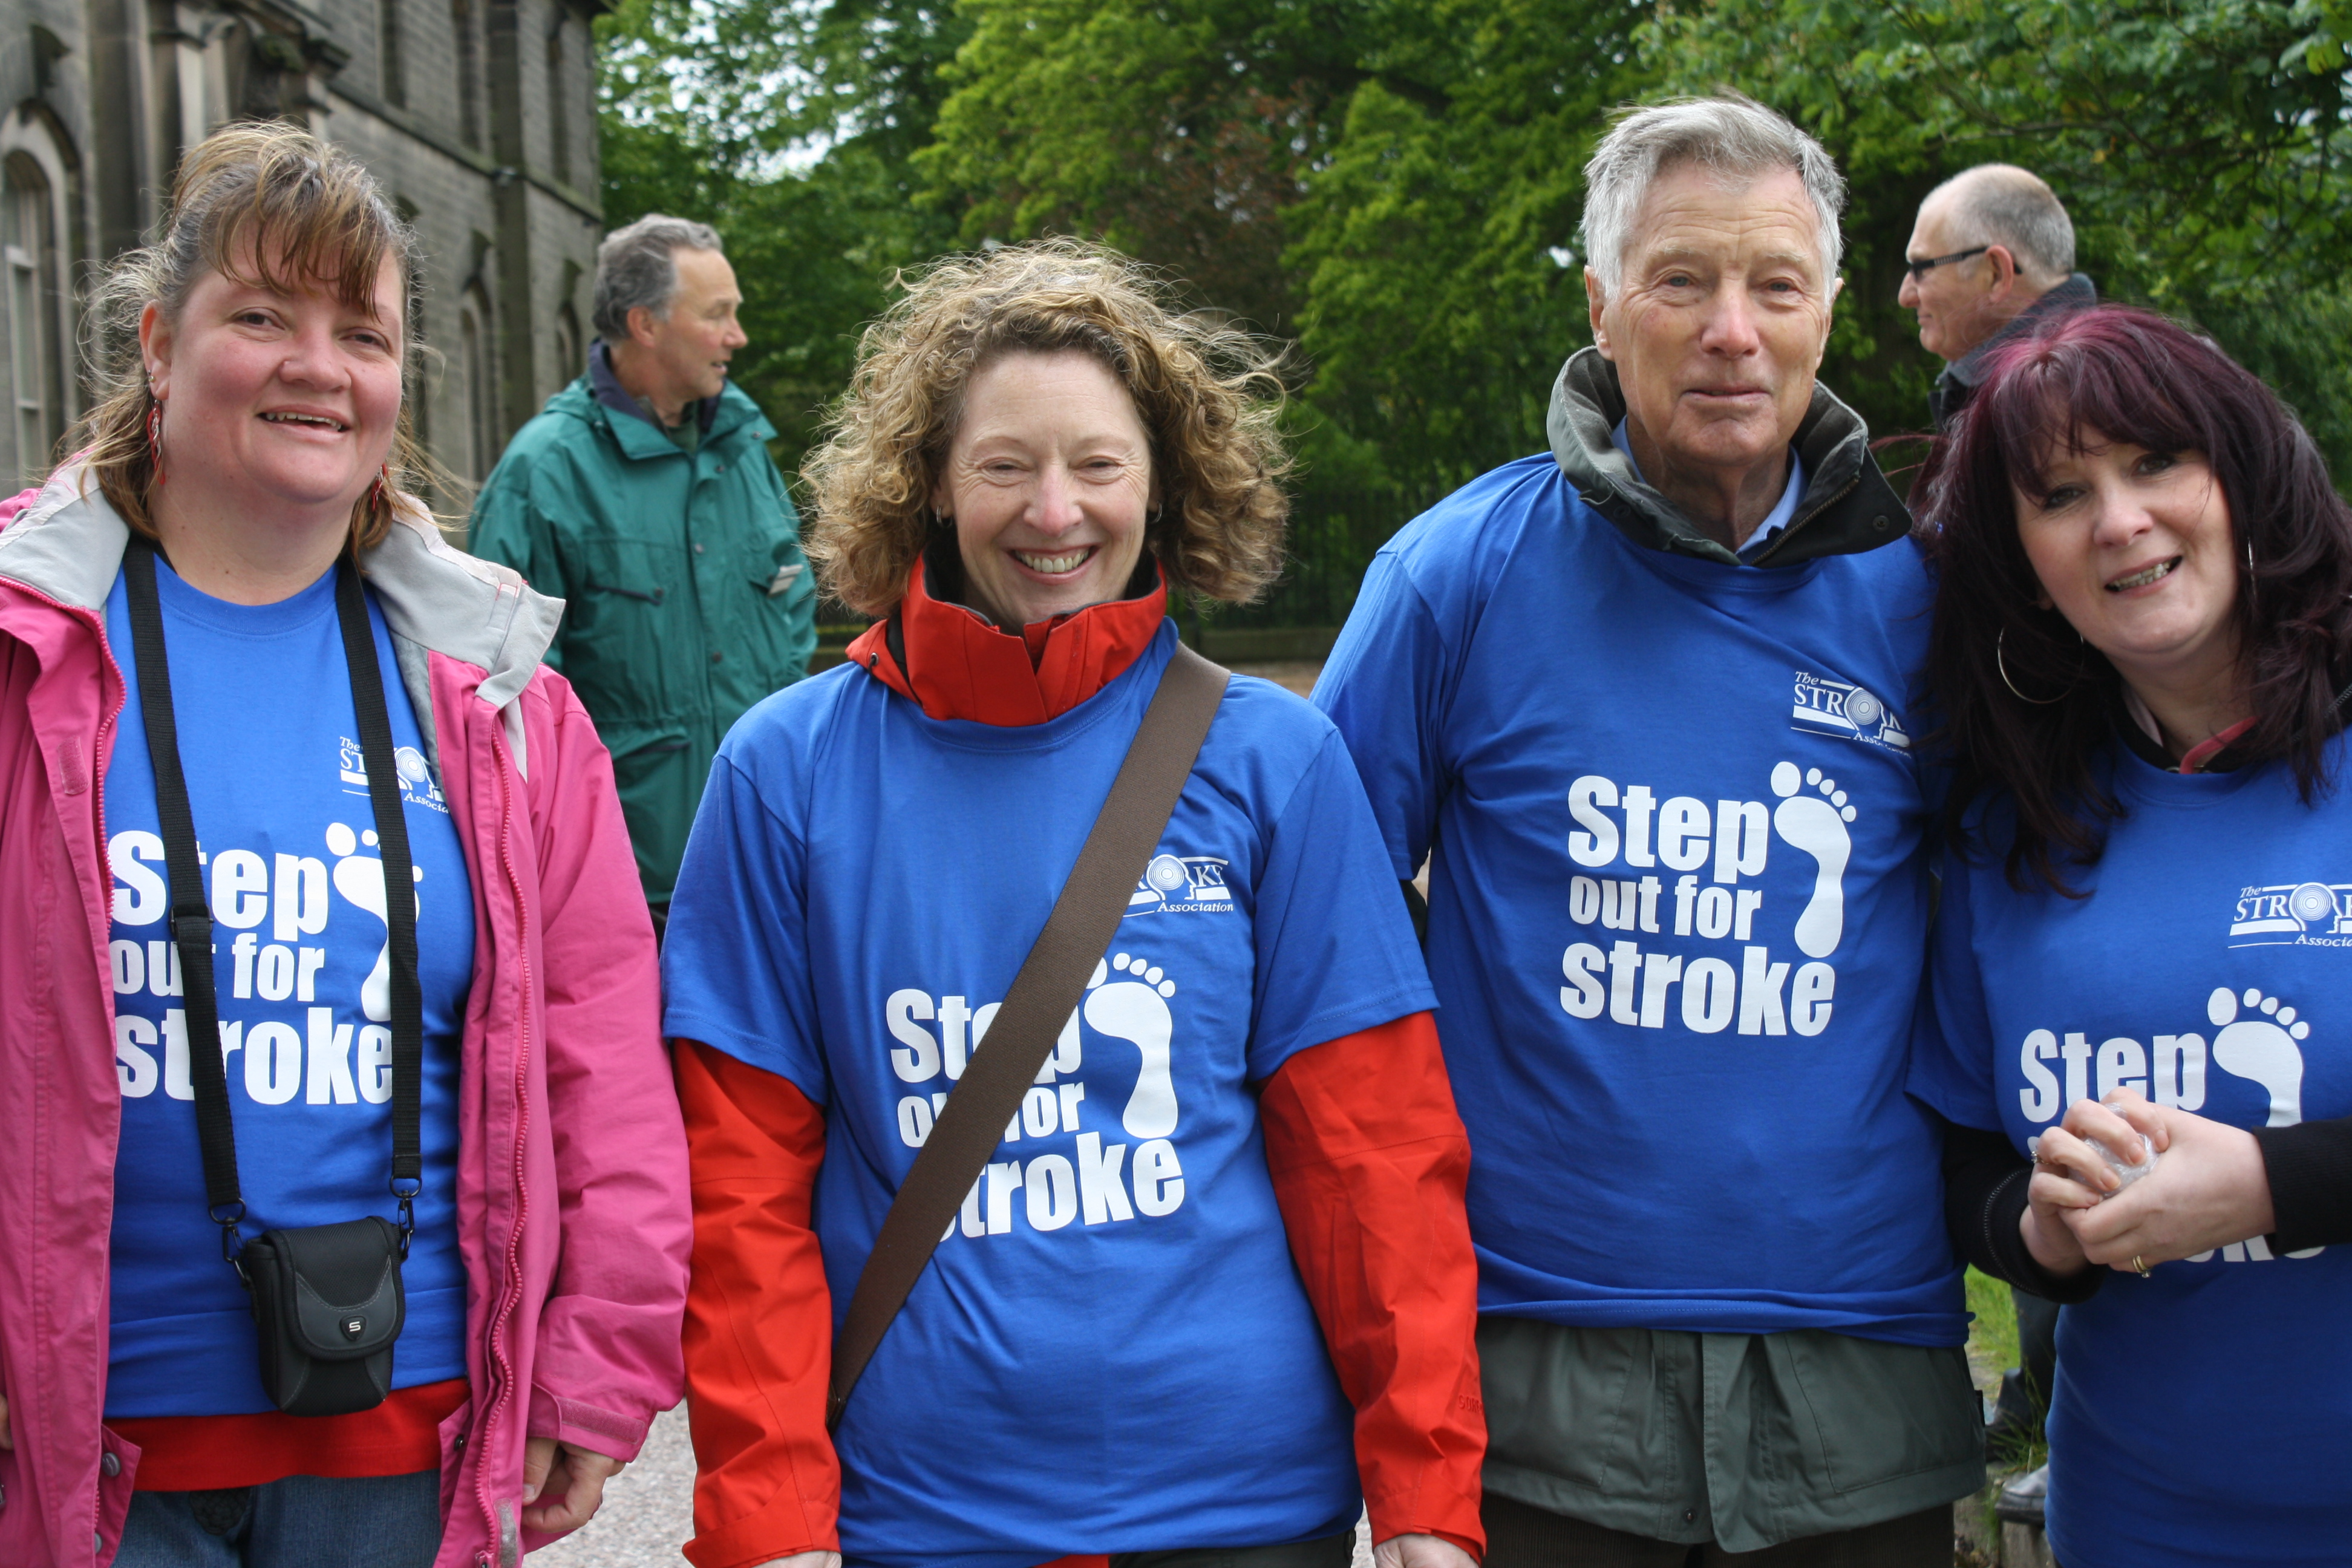 Home Instead Stockport co-owner Joanna Moore, Caregiver Sharon Leech, care manager Michele Bushell and James Cochrane, an 84 year old client at the Step out for Stroke walk